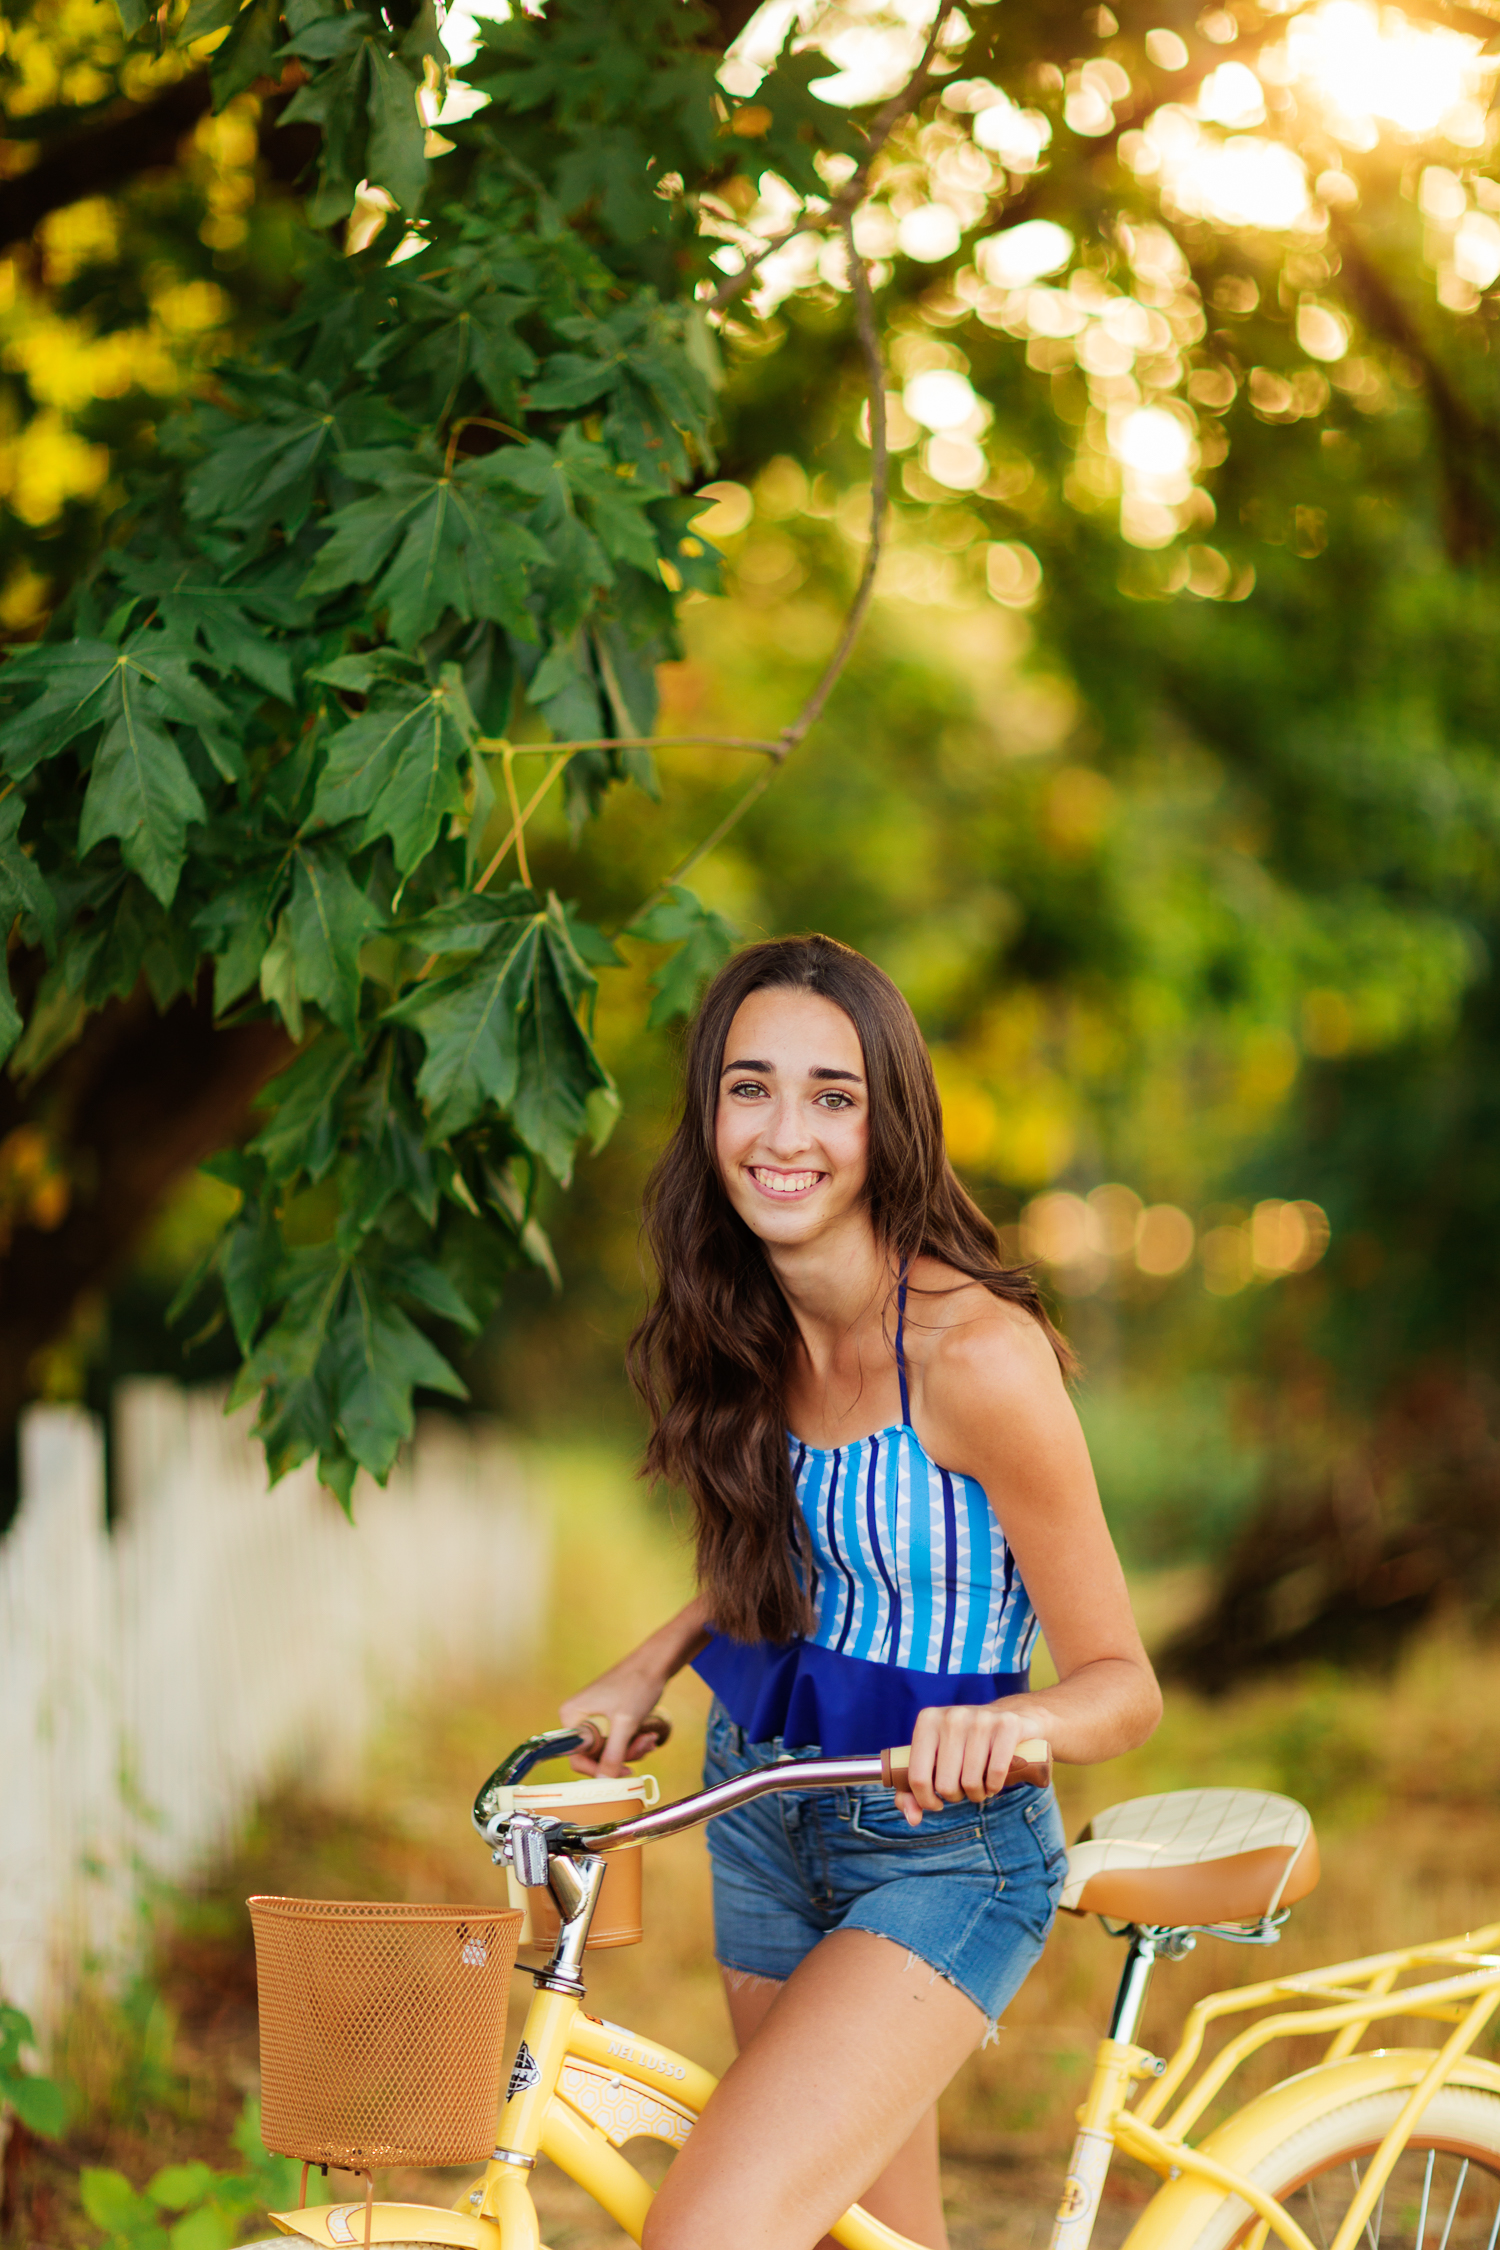 ariella-noelle-photography-summer-senior-sessions-portraiture-seattle-area-beautiful-senior-portraiture-1-6.jpg